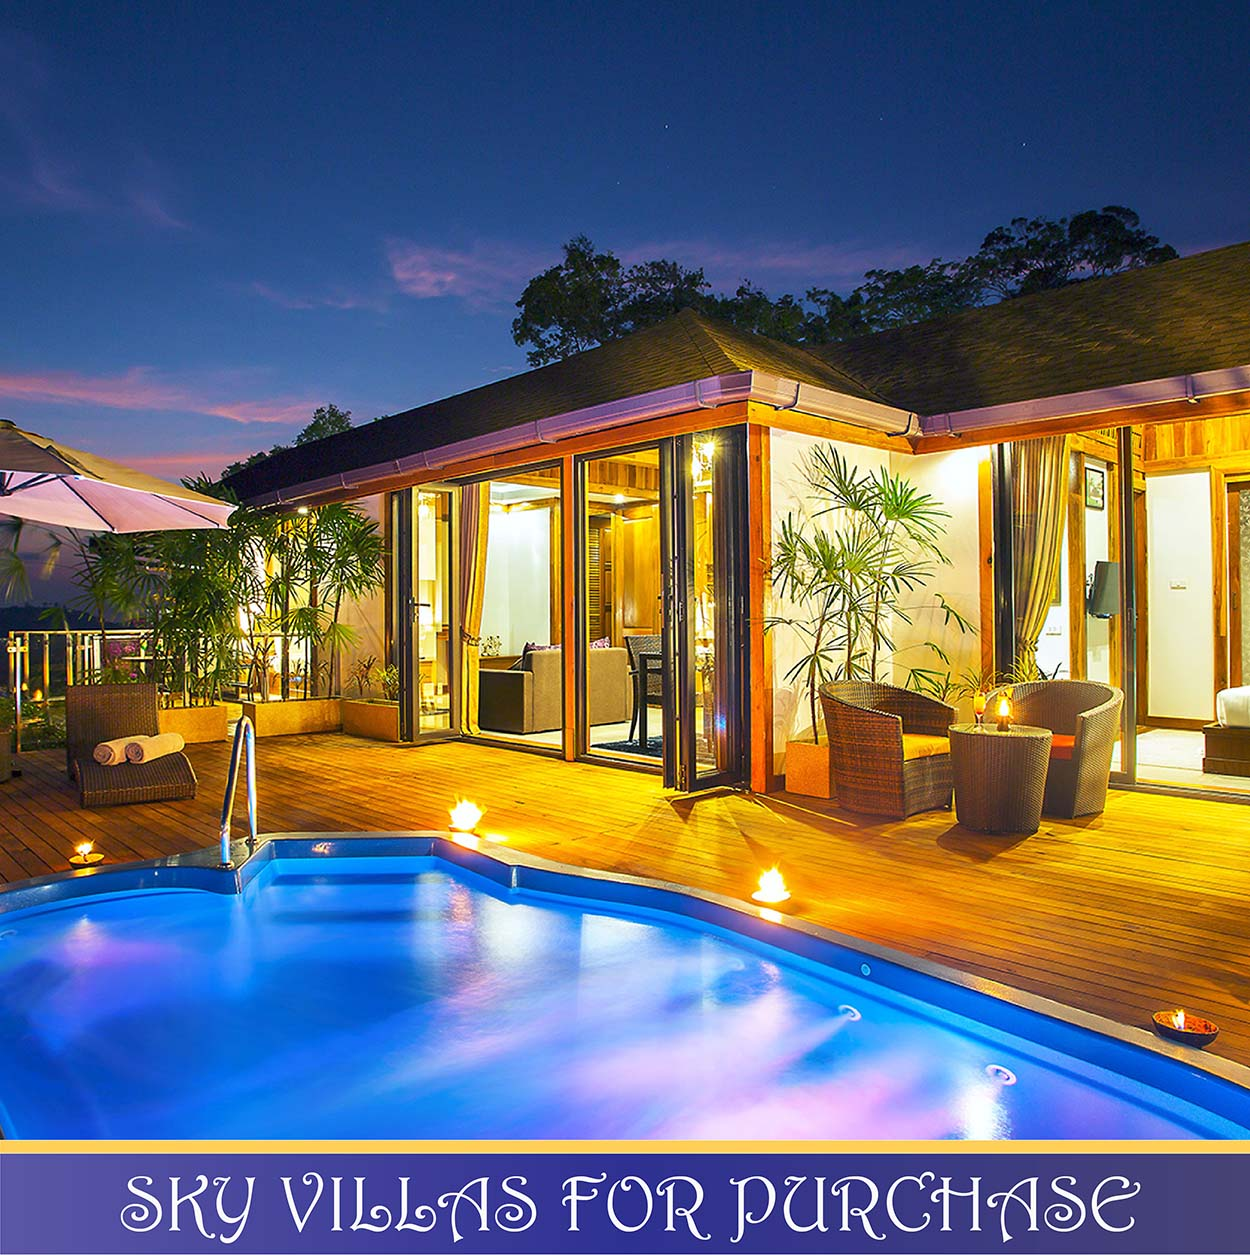 Sky Villas promotional sale